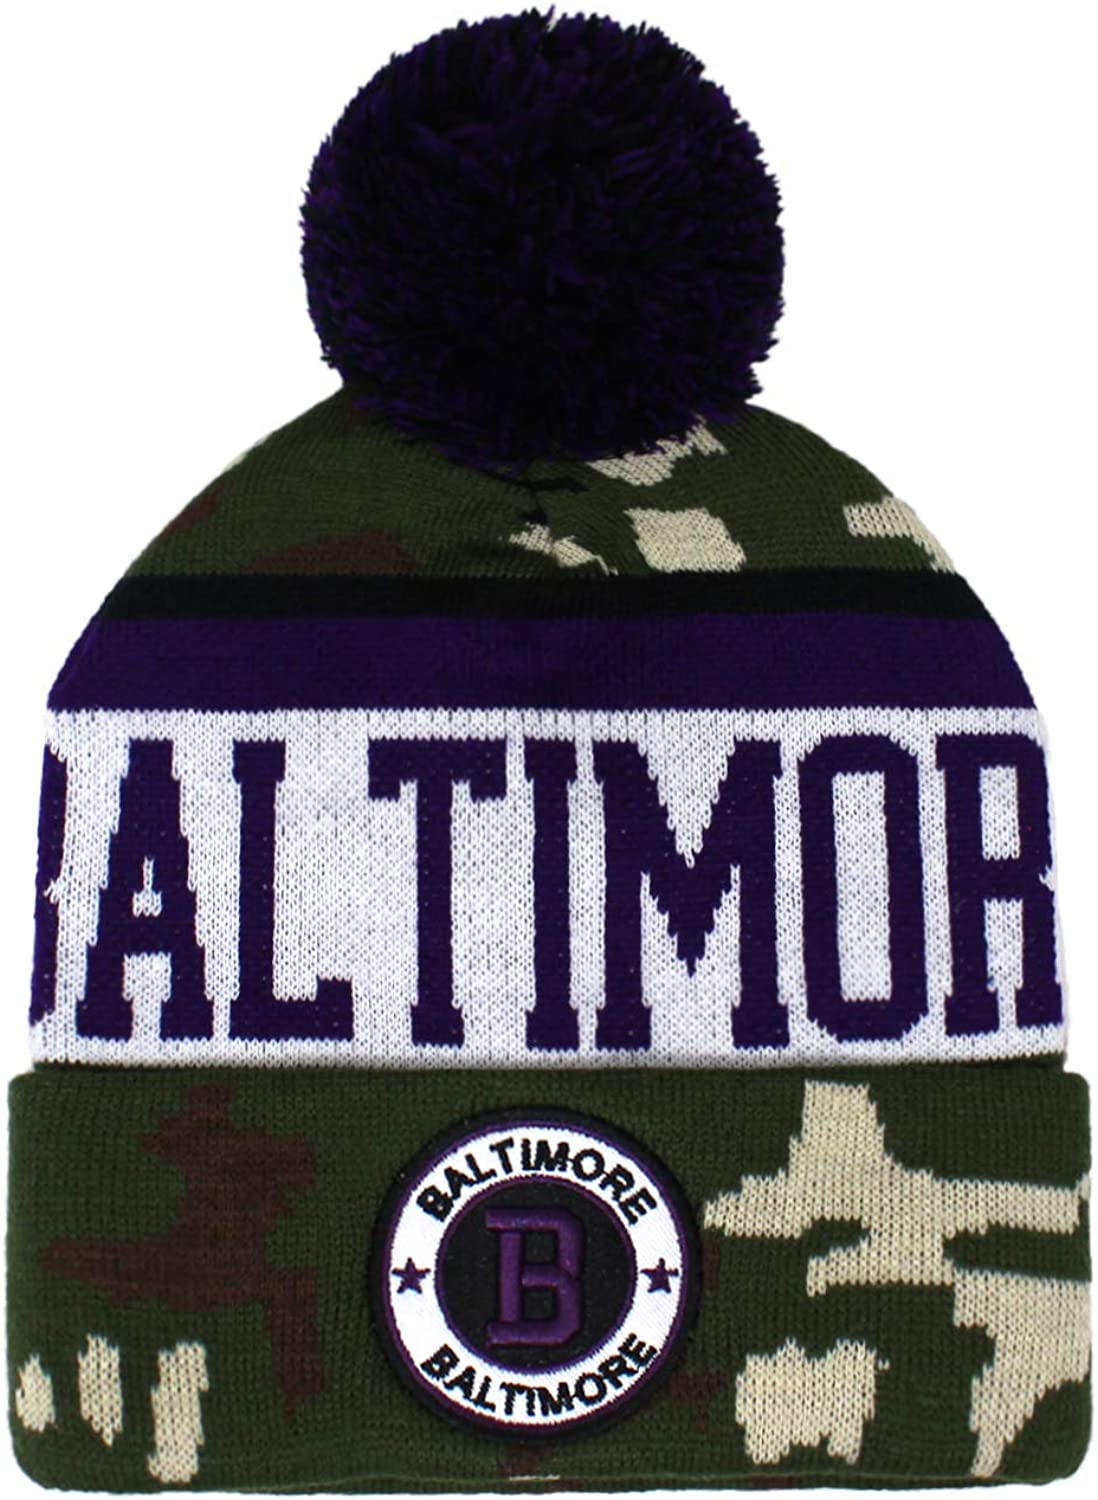 Football City Pom Beanie Premium Embroidered Patch Winter Soft Thick Beanie Camo Skully Hat